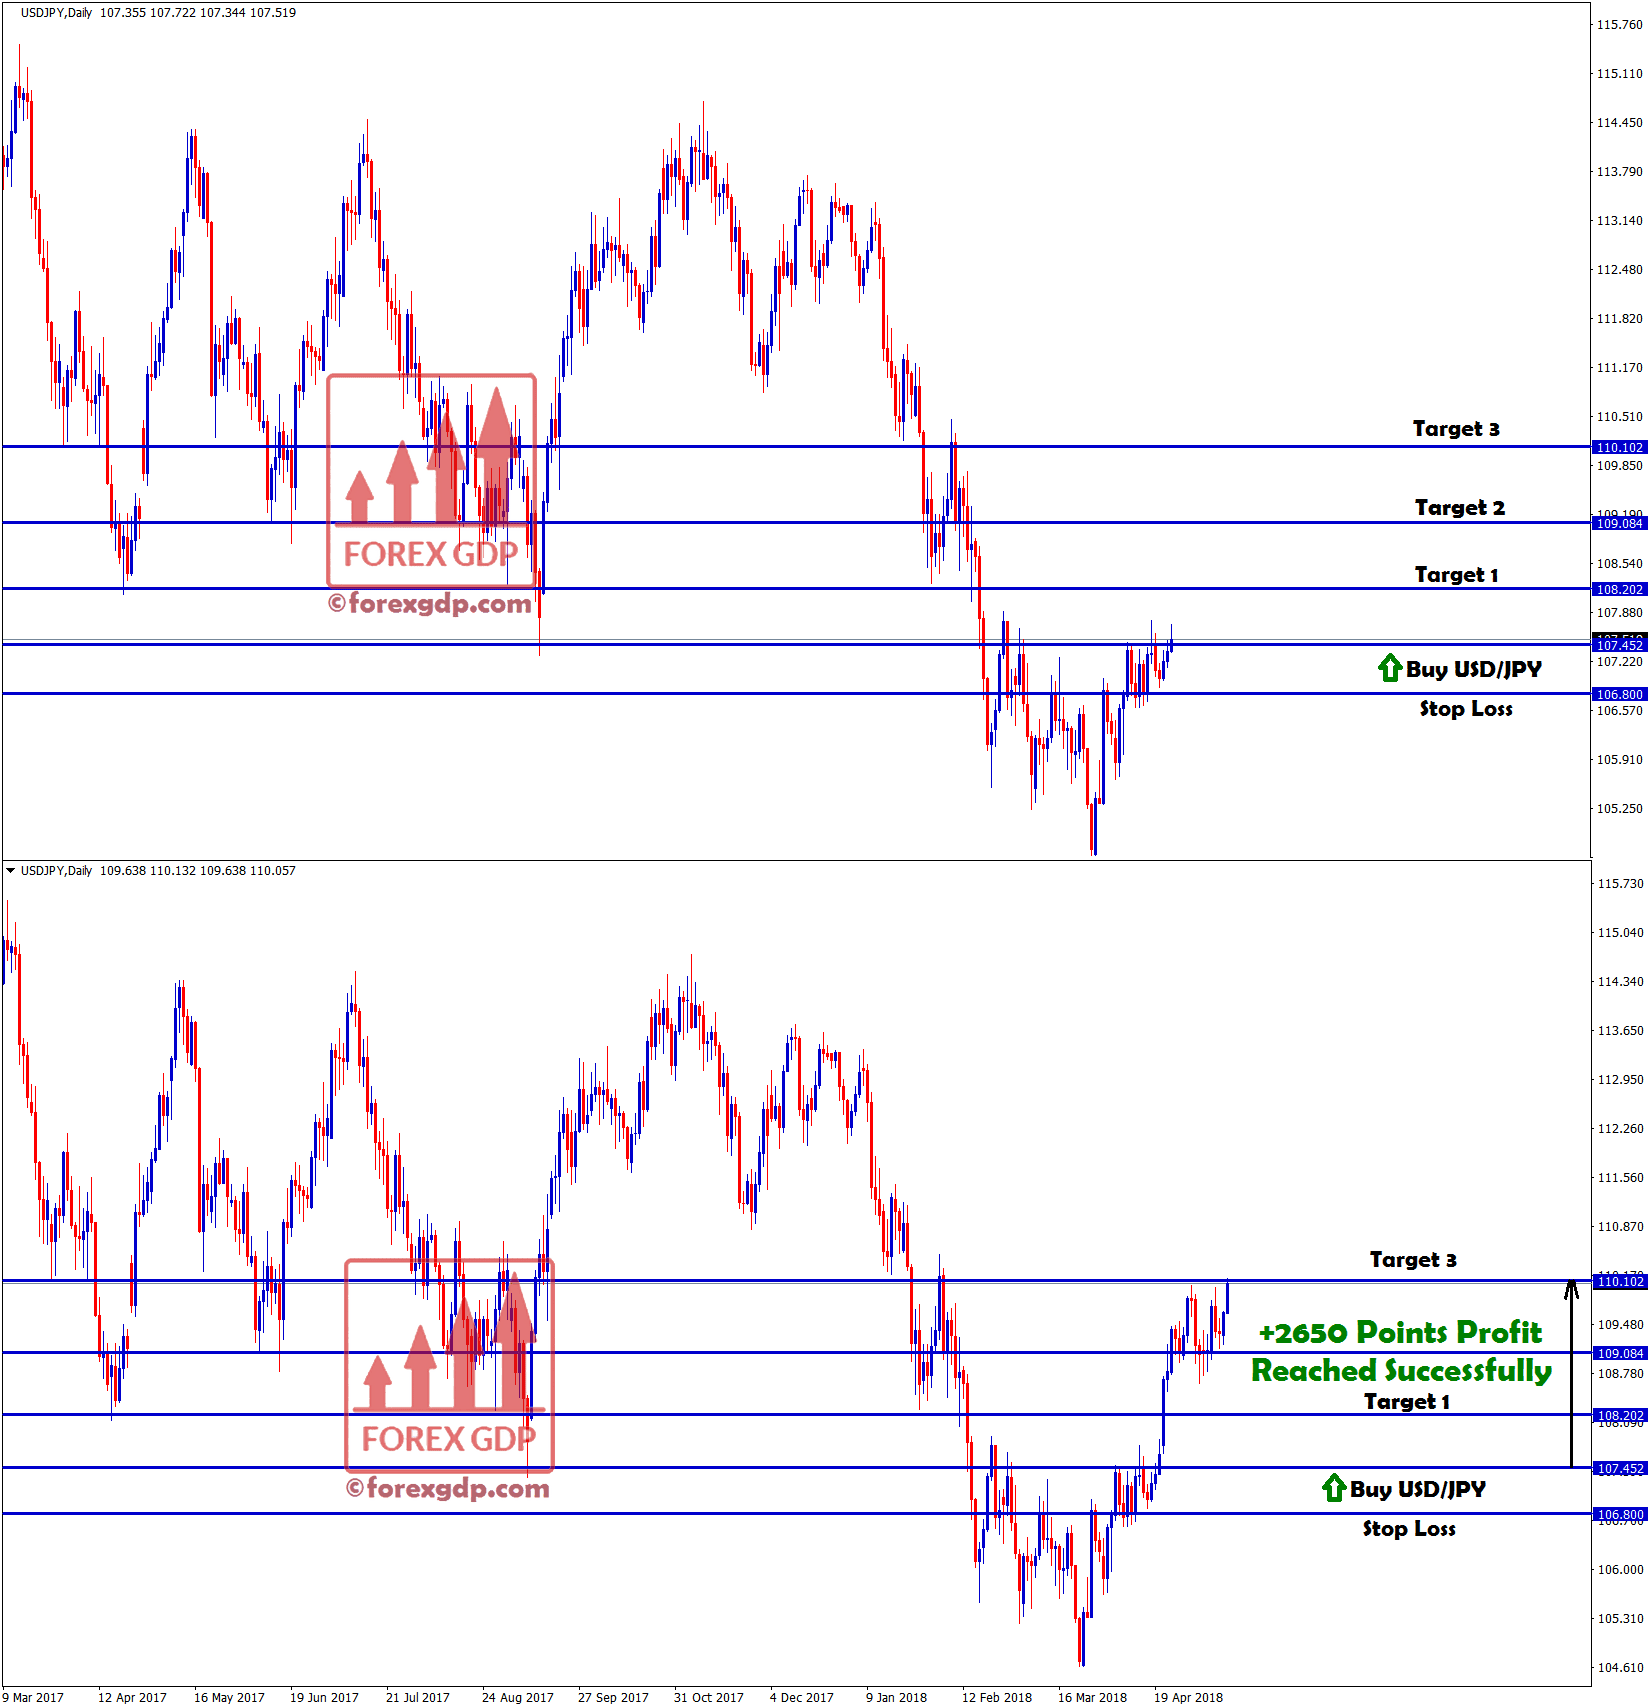 target 3 hits with +2650 points profit in usd jpy buy signal